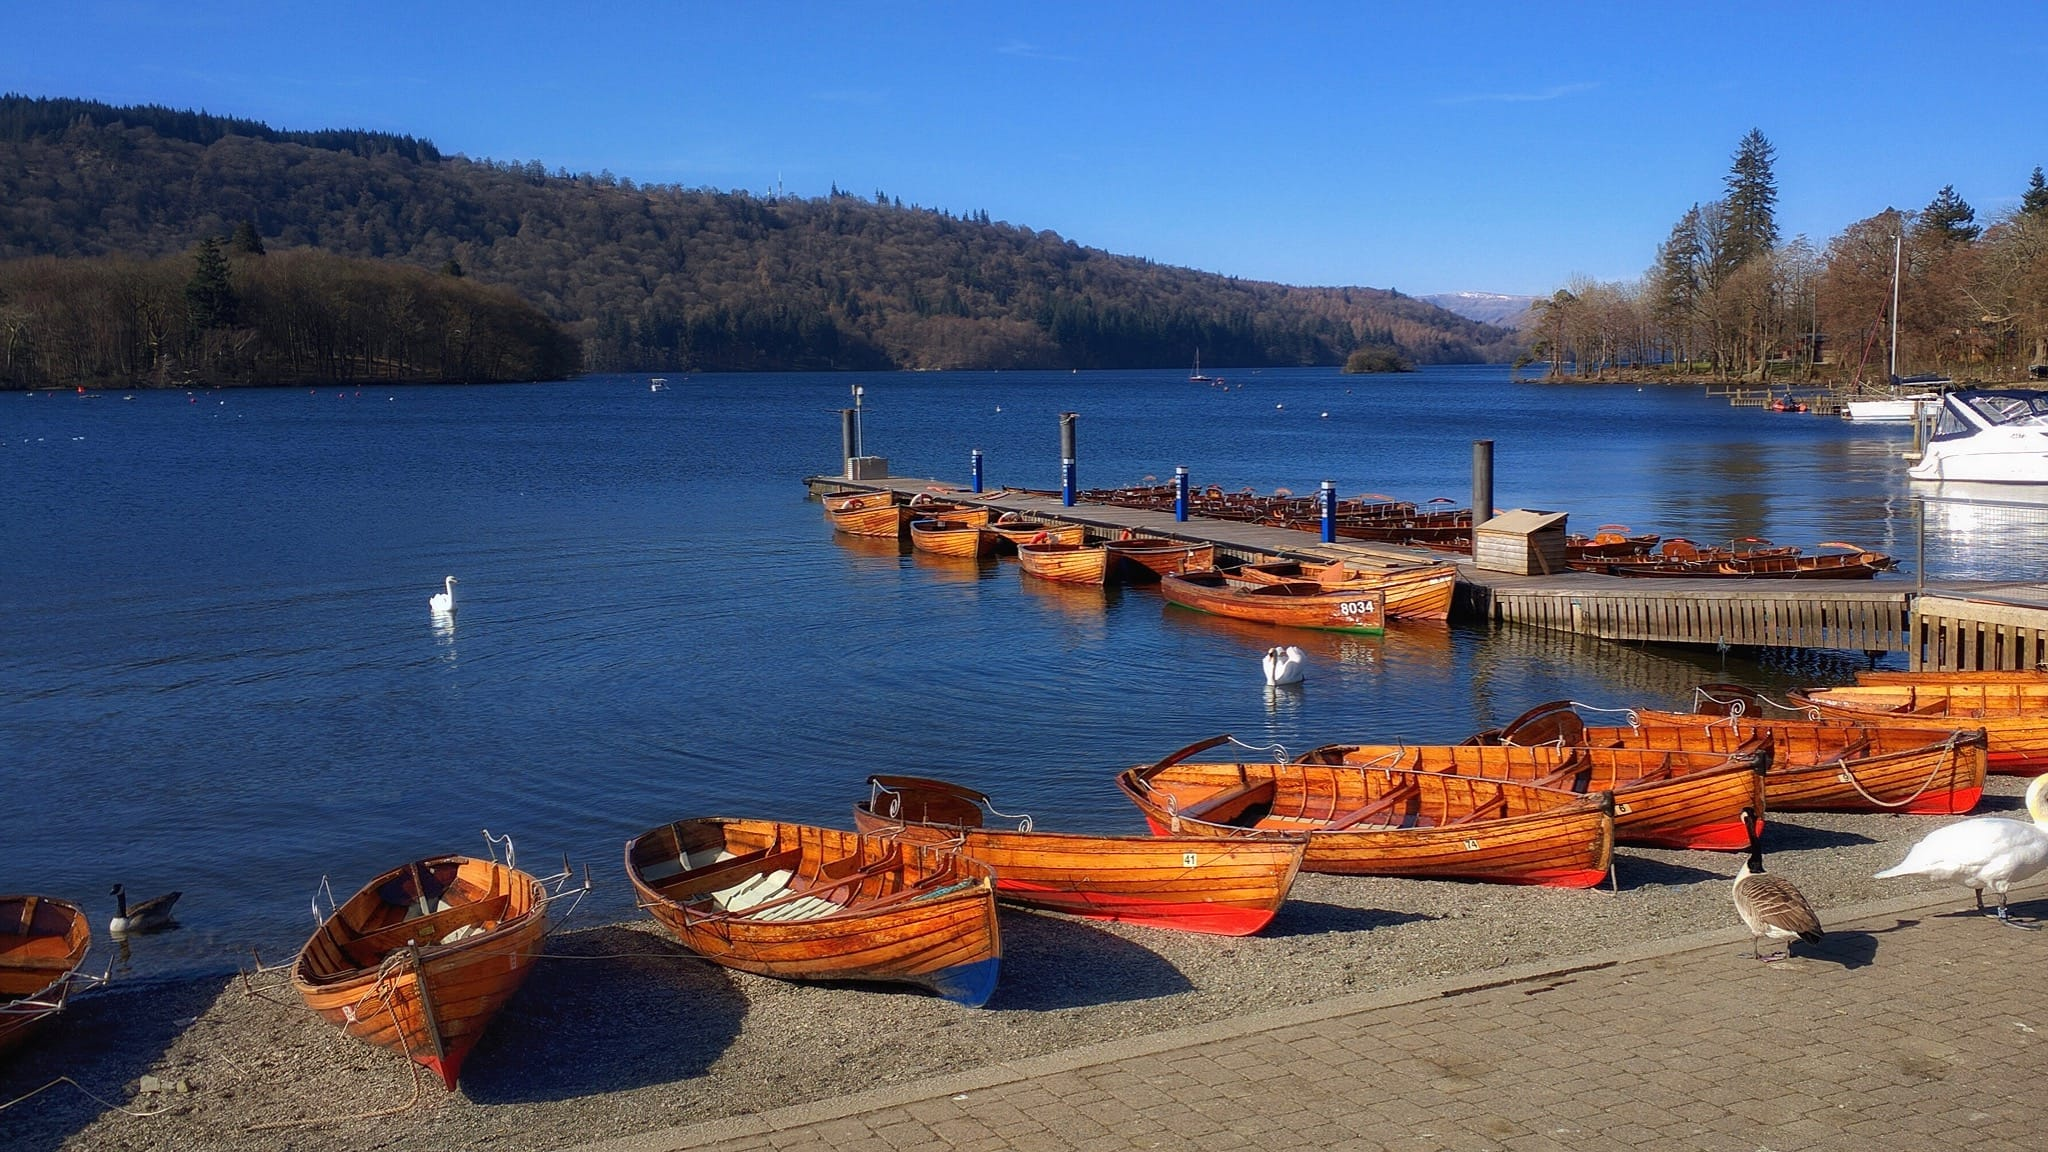 A view of lake Windermere from Bowness Pier, with lots of small wooden boats moored up, on a clear blue sky day.